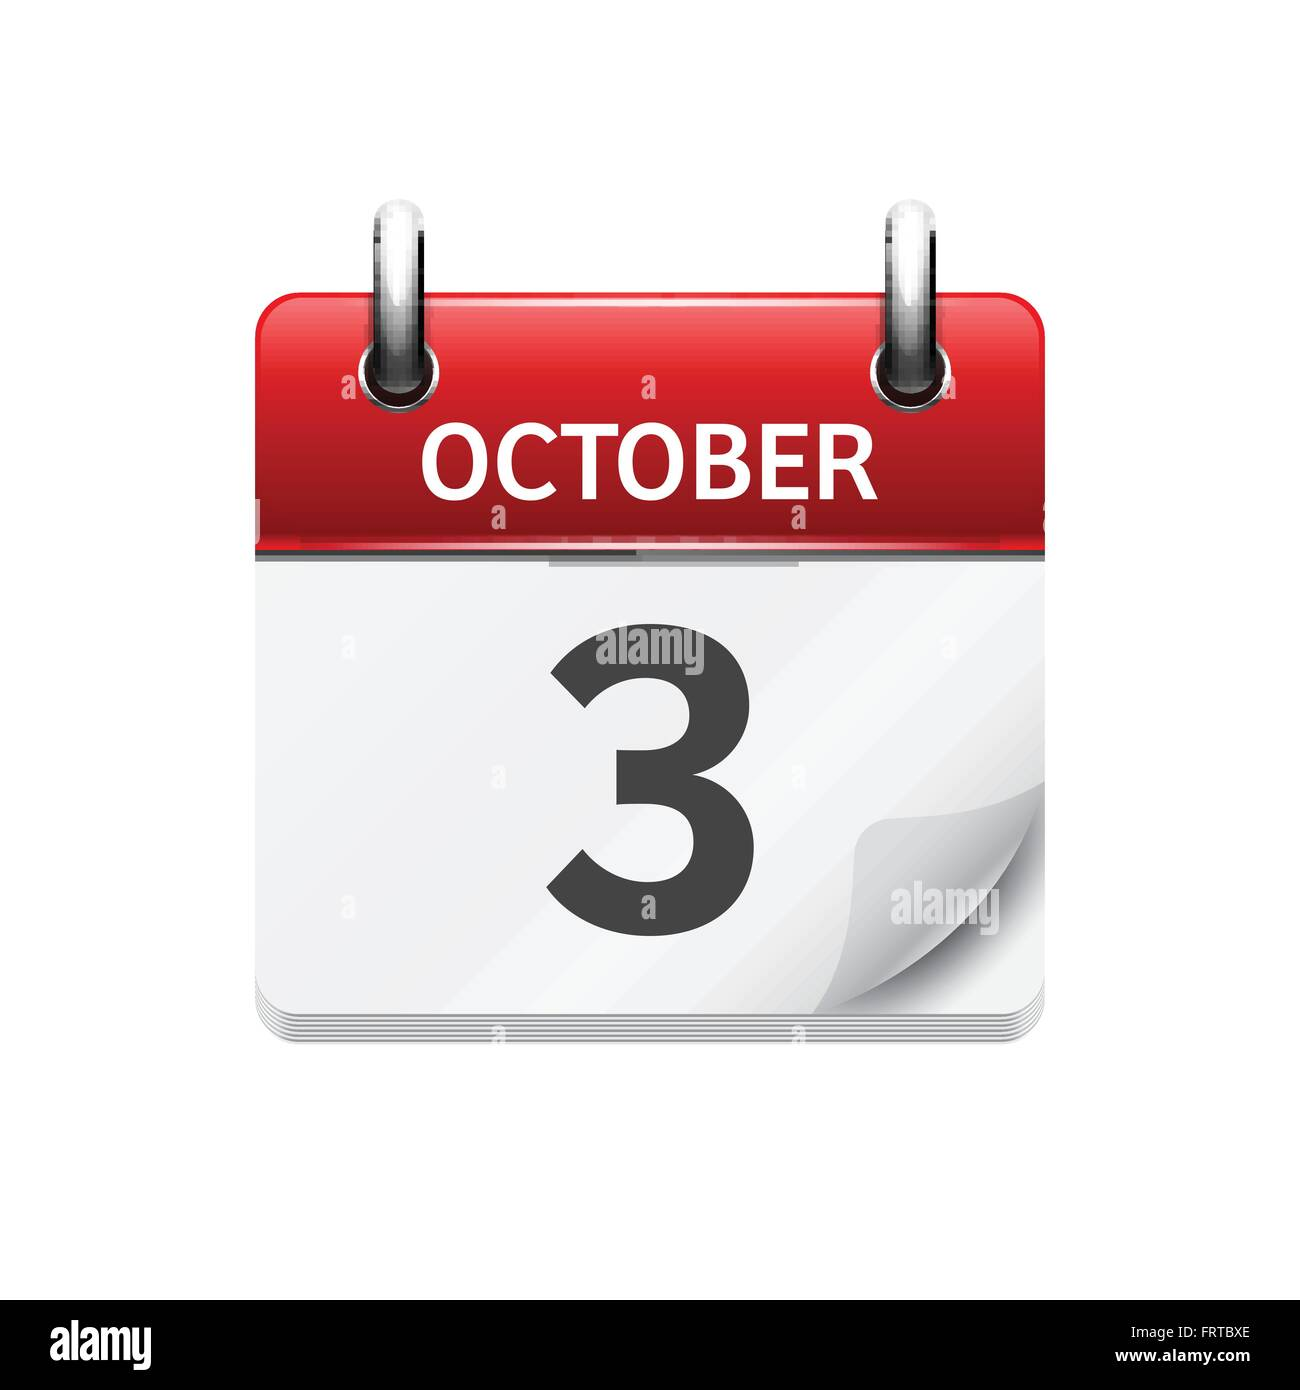 Daily Calendar Icon : October vector flat daily calendar icon date and time